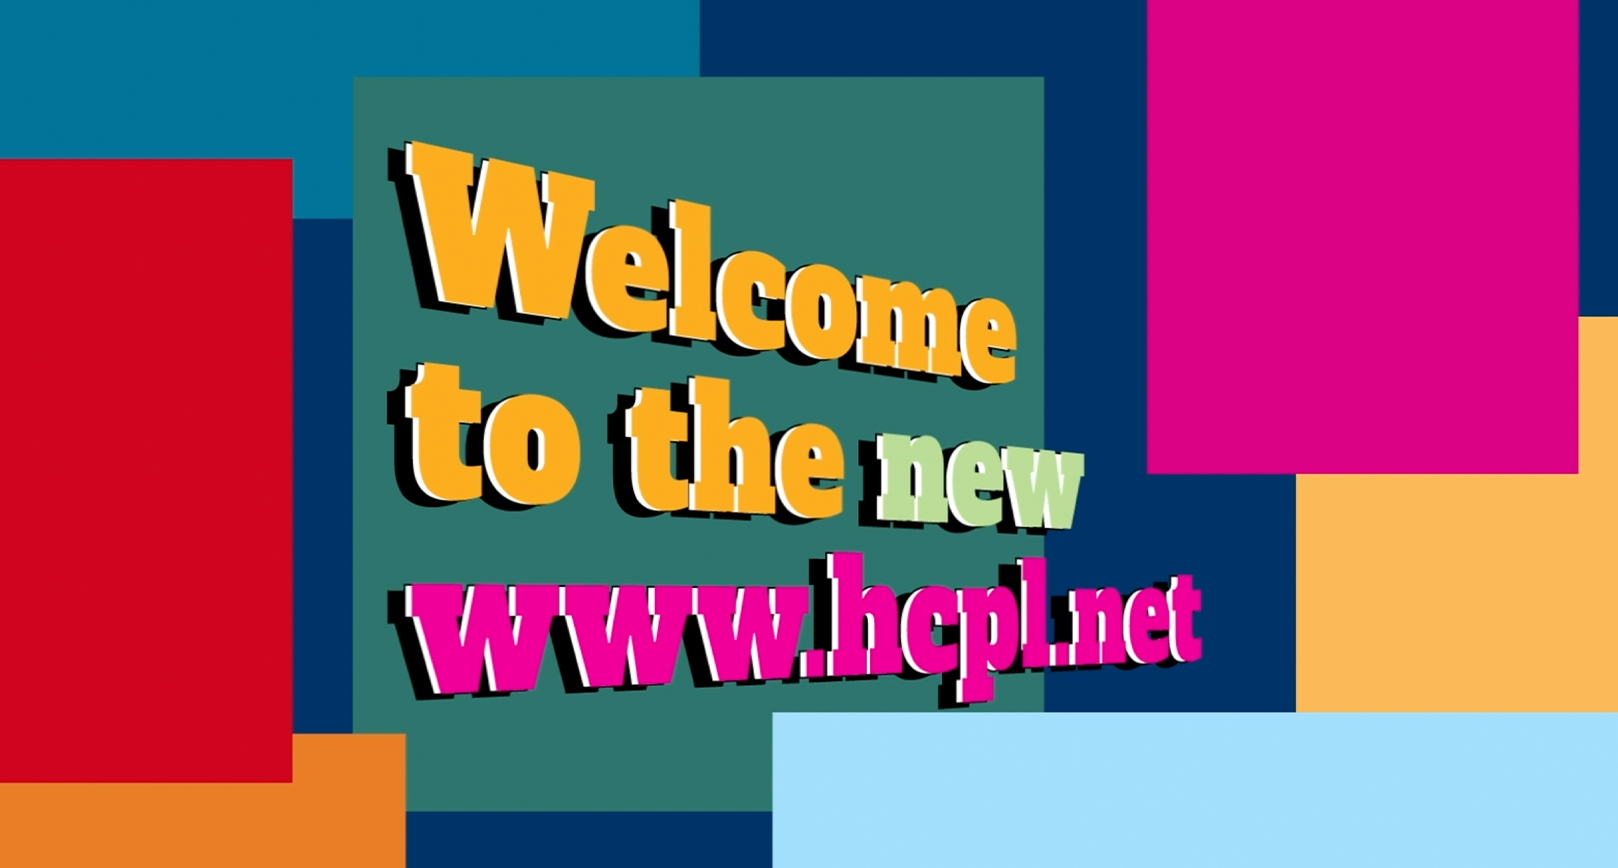 Flat graphic in bright colors reading Welcome to the NEW HCPL.NET